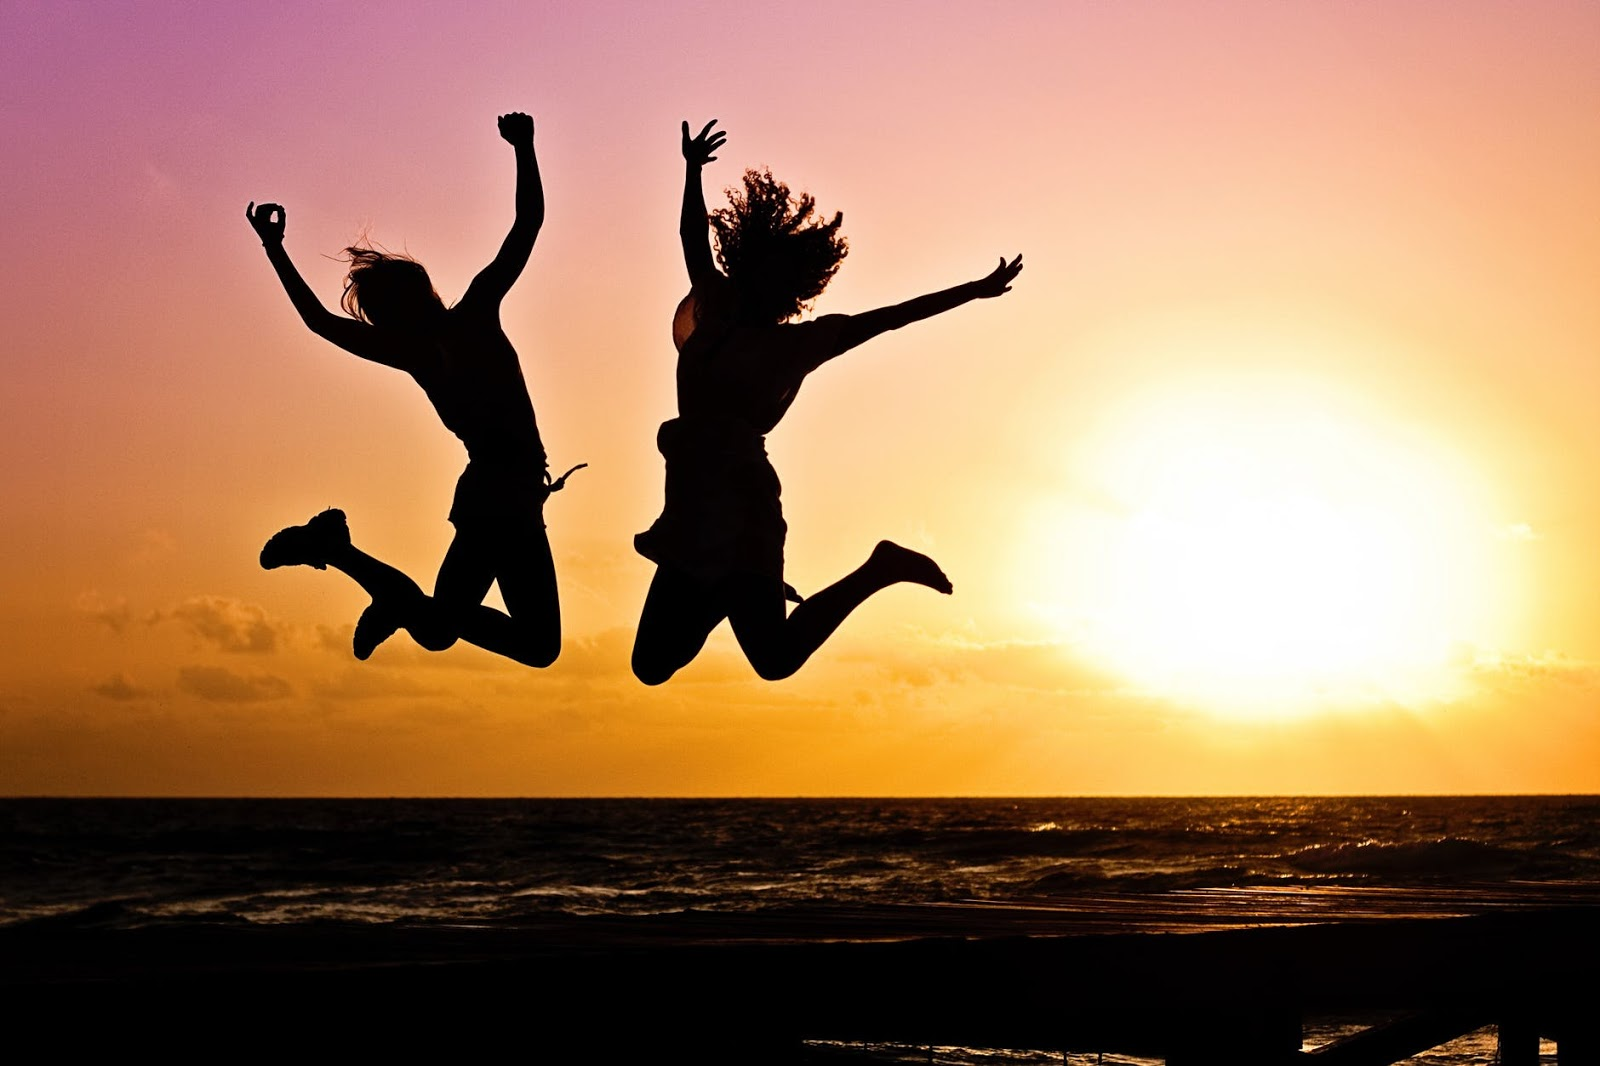 Two people are jumping in the air on a beach as the sun sets behind them.